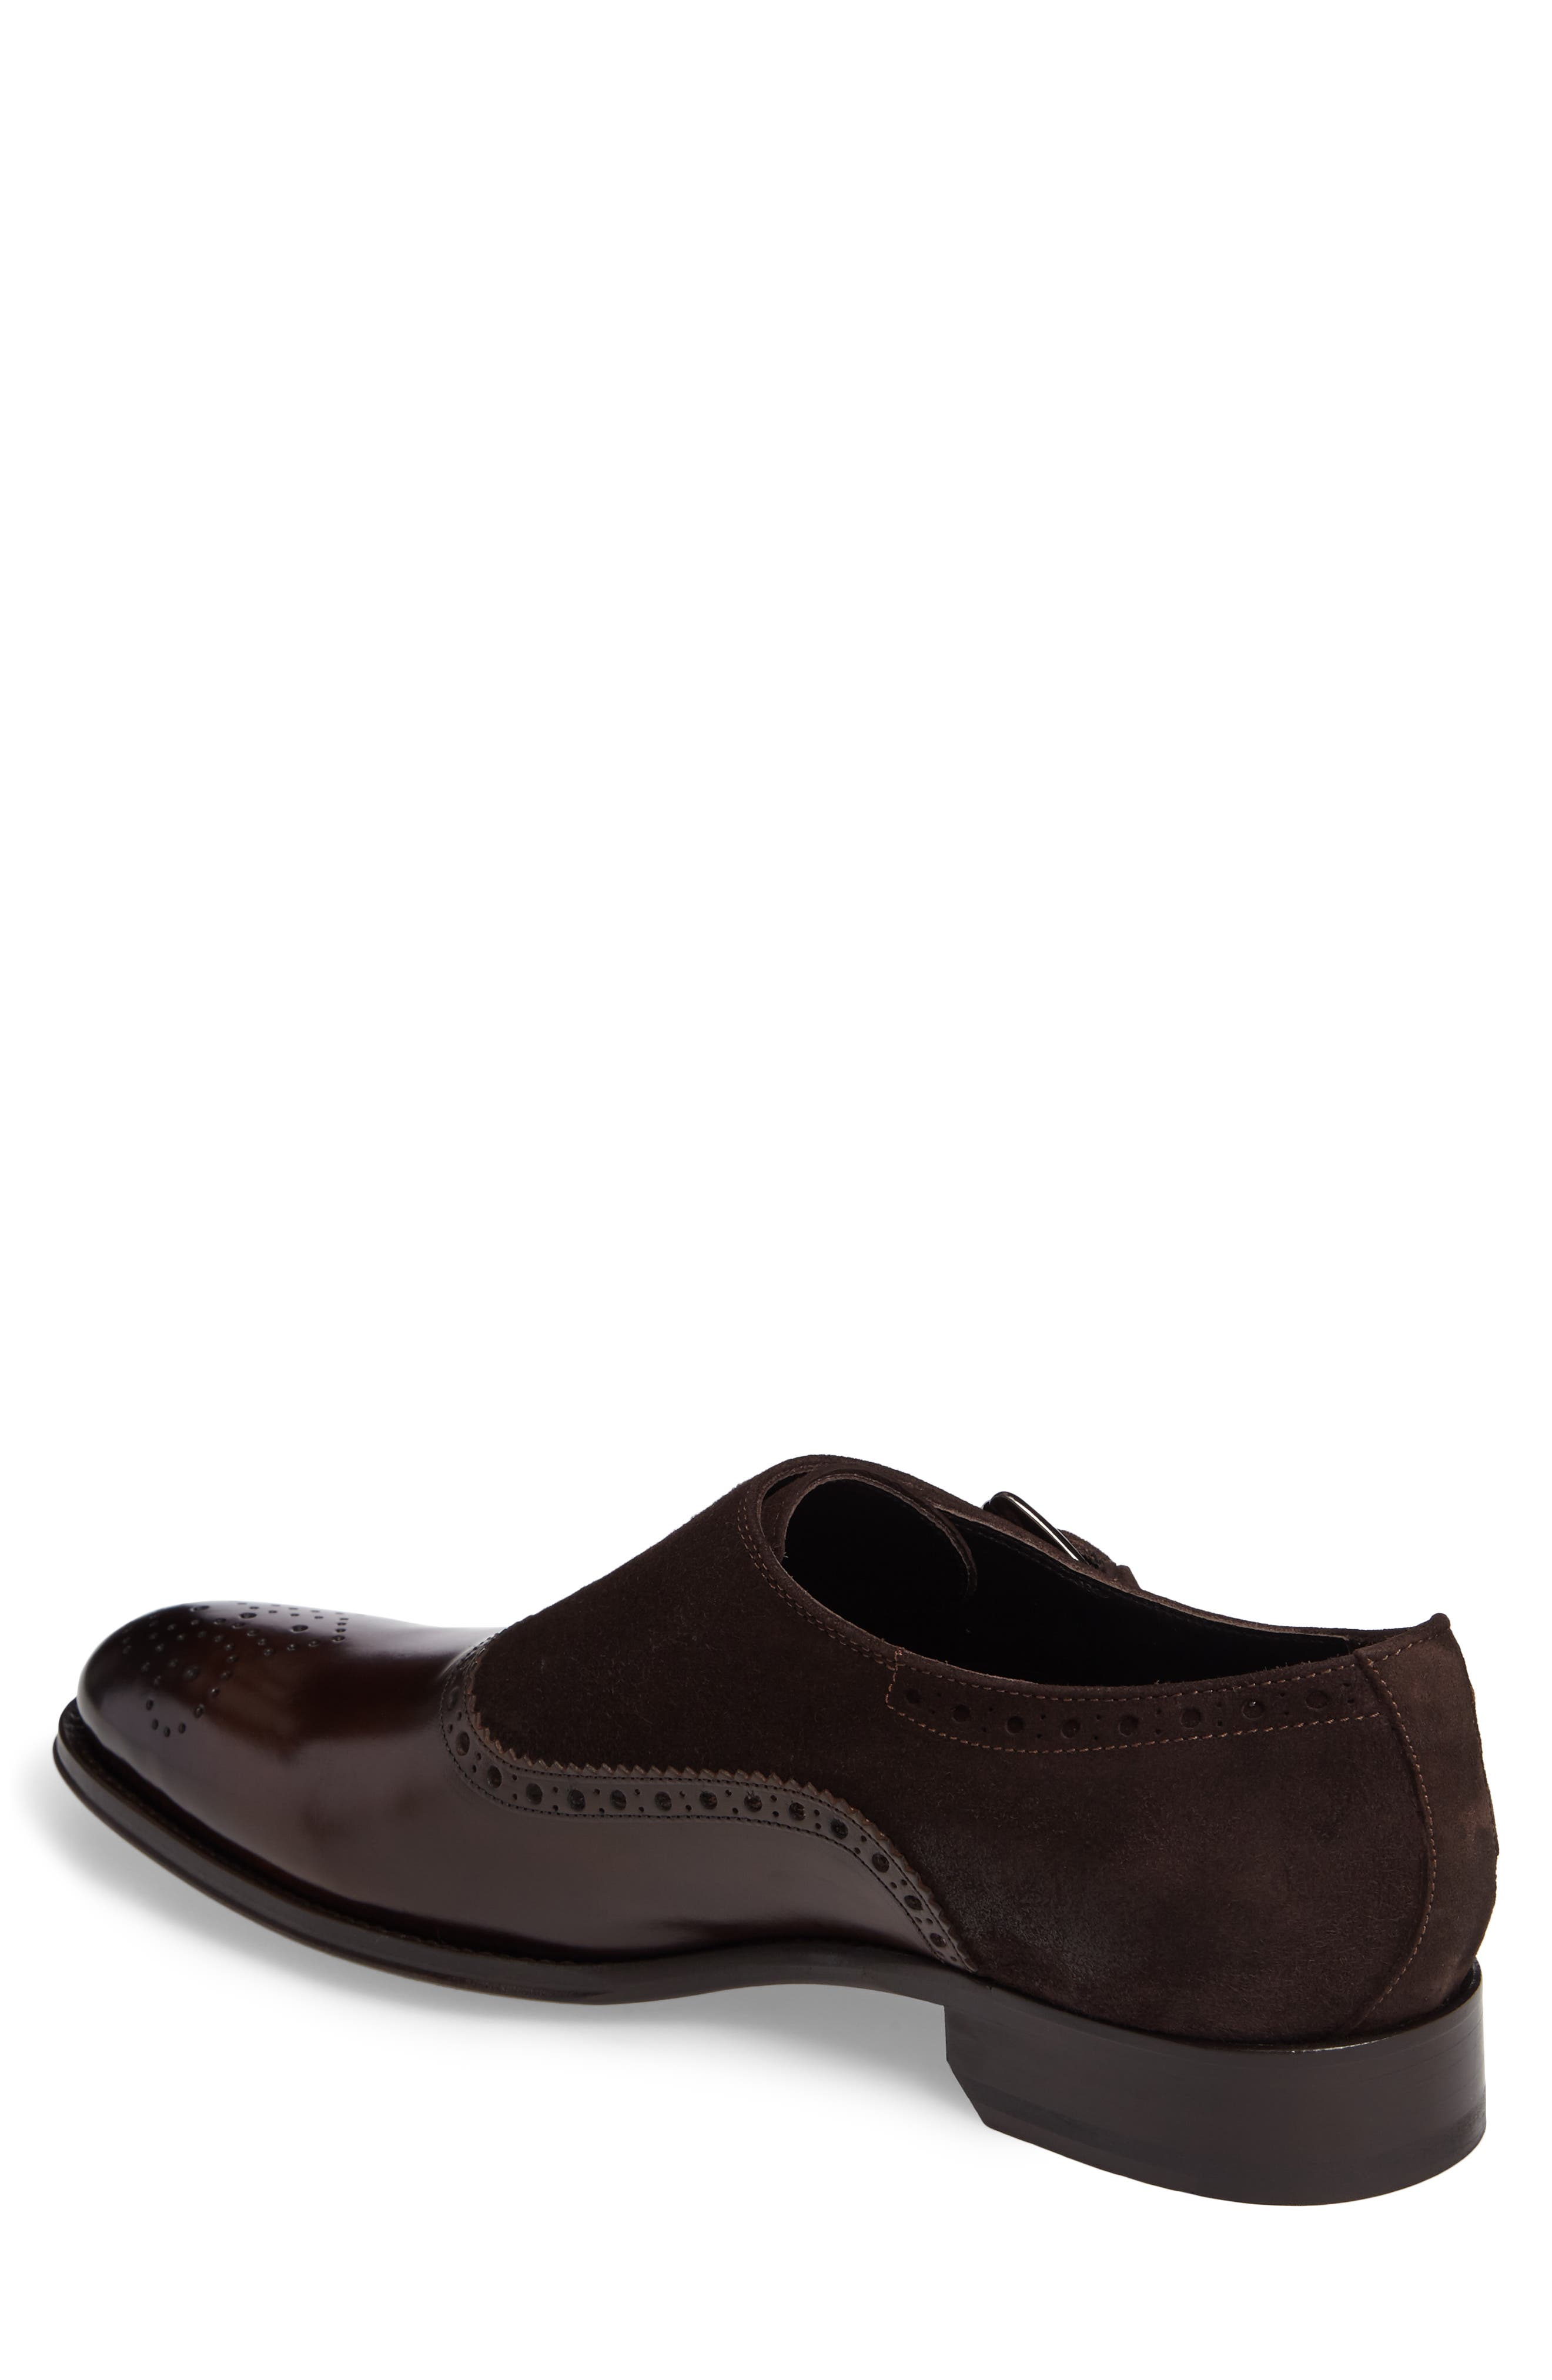 Arcadia Monk Strap Shoe,                             Alternate thumbnail 2, color,                             Brown Leather/ Suede